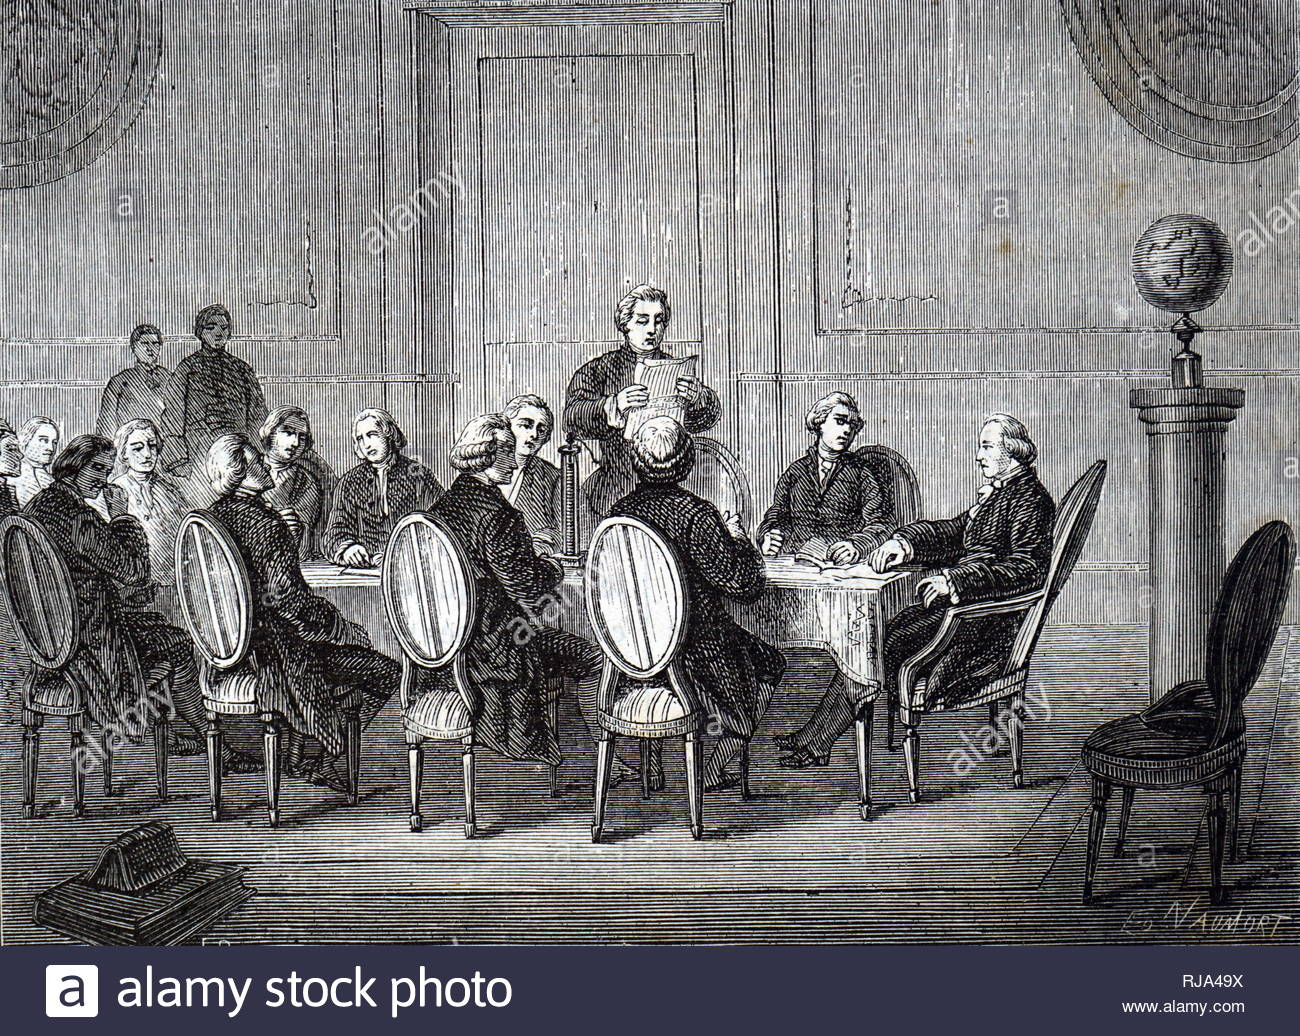 Engraving depicting Joseph Banks reading to the Society Volta's letter about his electric pile (battery) to members of the Royal Society. Joseph Banks (1743-1820) an English naturalist, botanist and patron of the natural sciences. Dated 19th Century - Stock Image